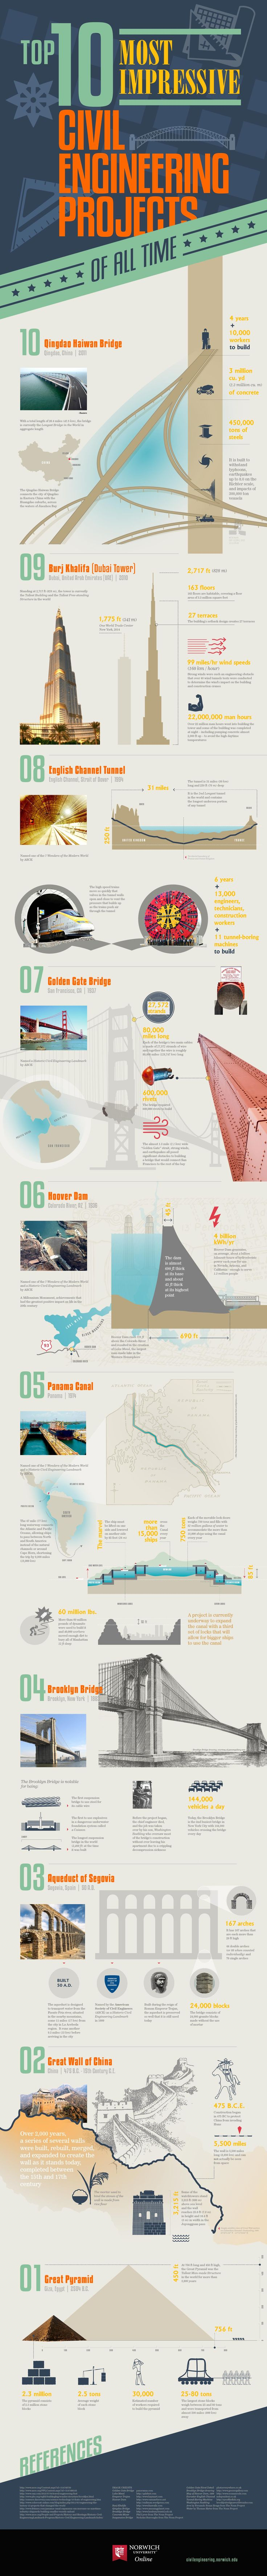 [Infographic] Top 10 Most Impressive Civil Engineering Projects of All Time